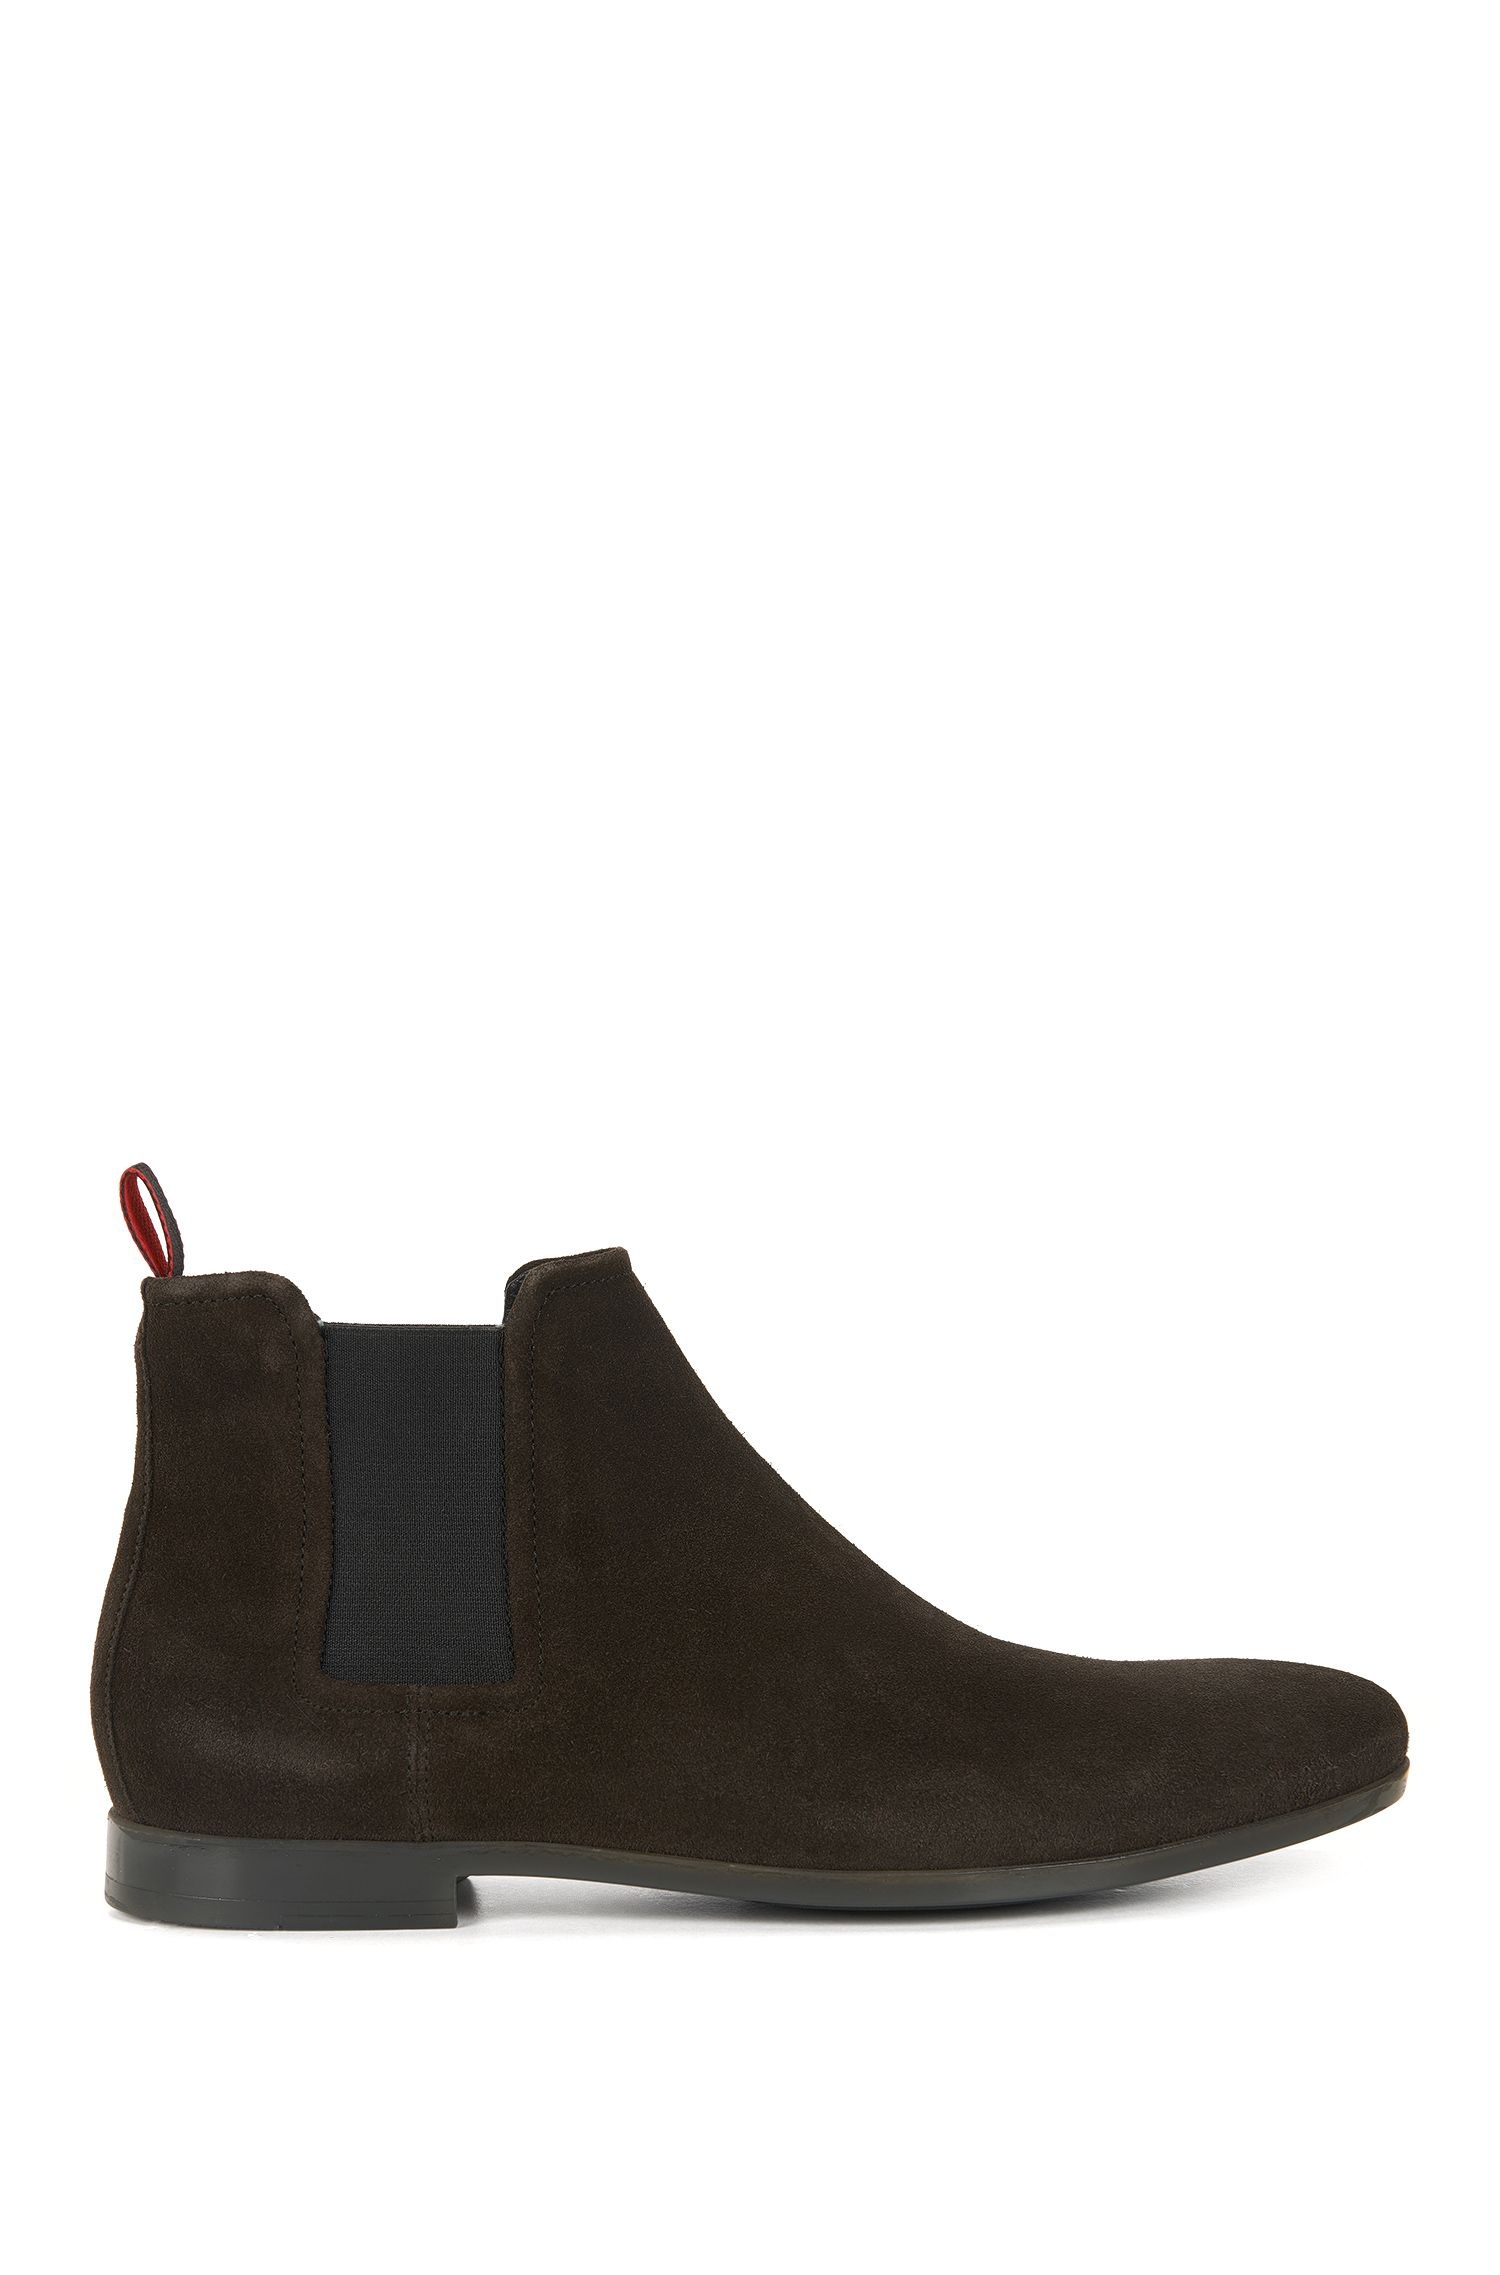 Chelsea boots in soft suede